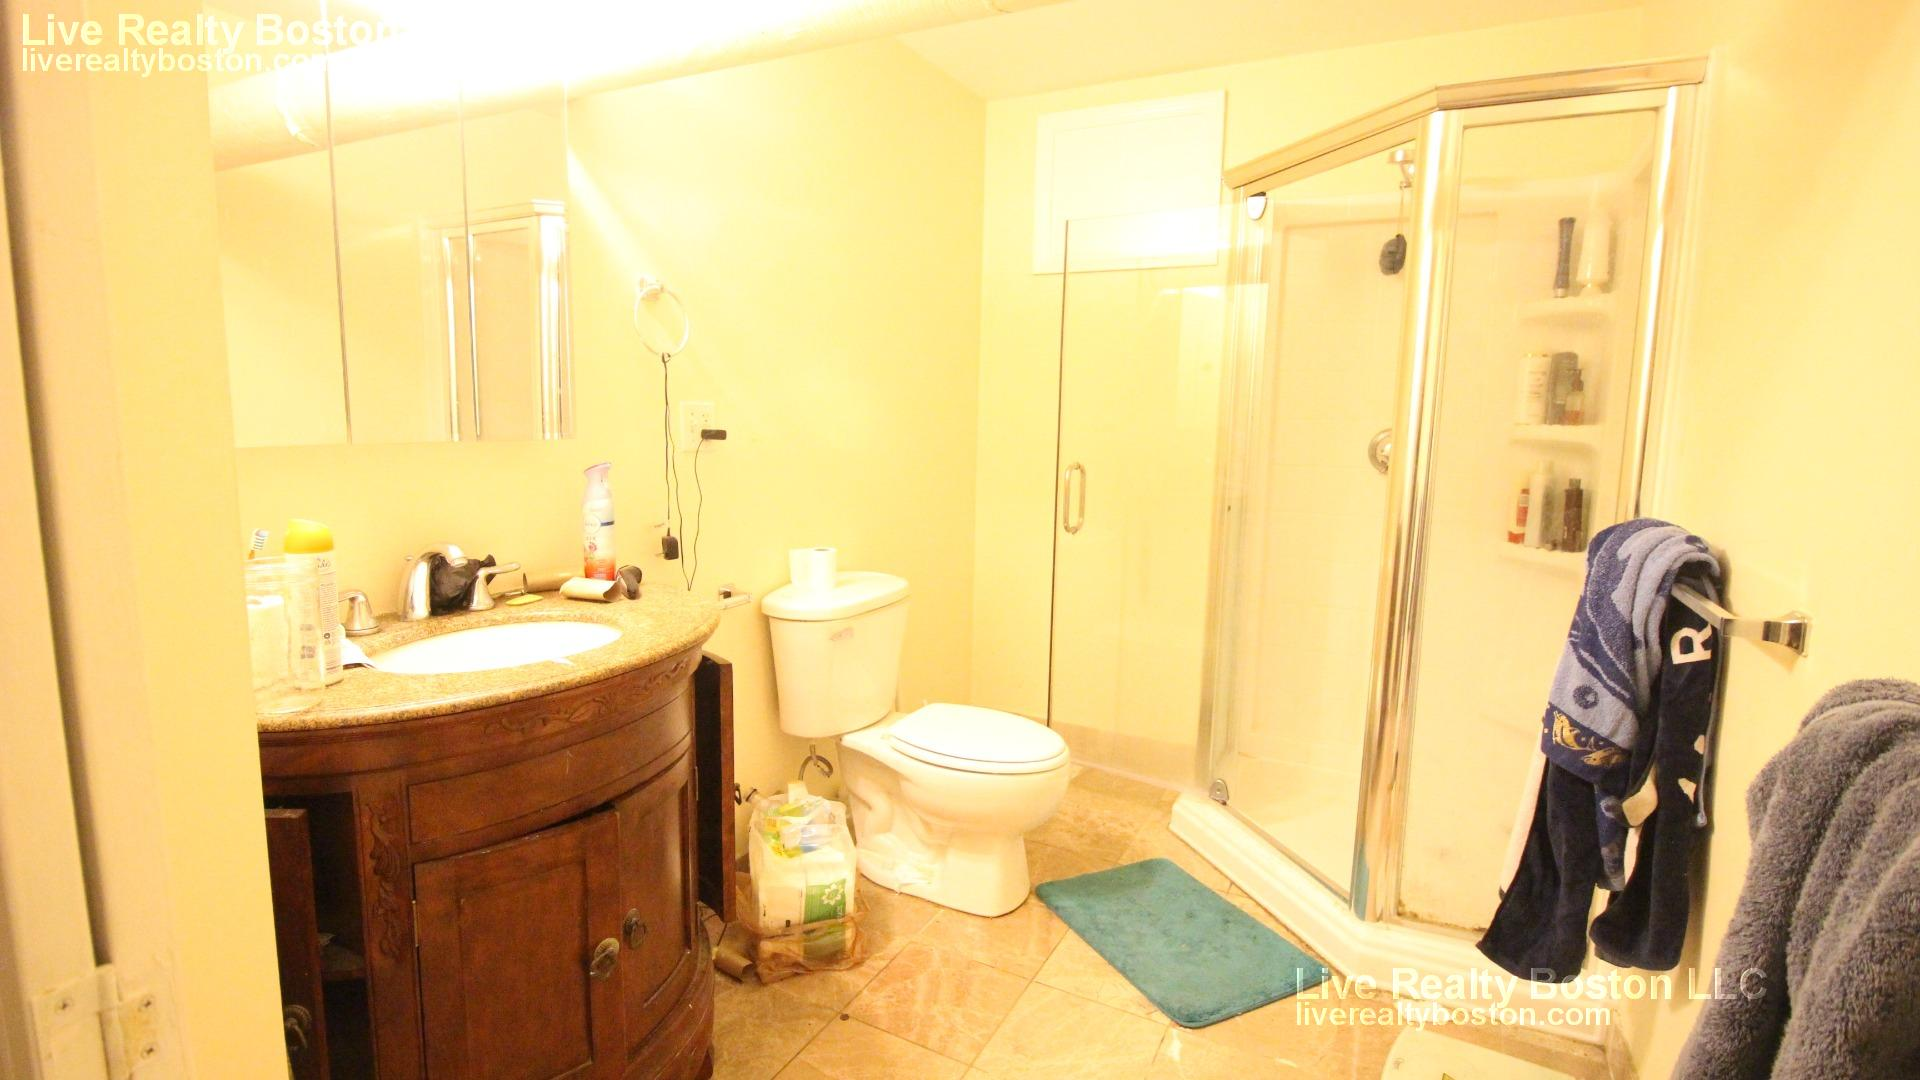 8 - AMAZING ROOM FOR RENT IN ALLSTON!! ~CALL TODAY~